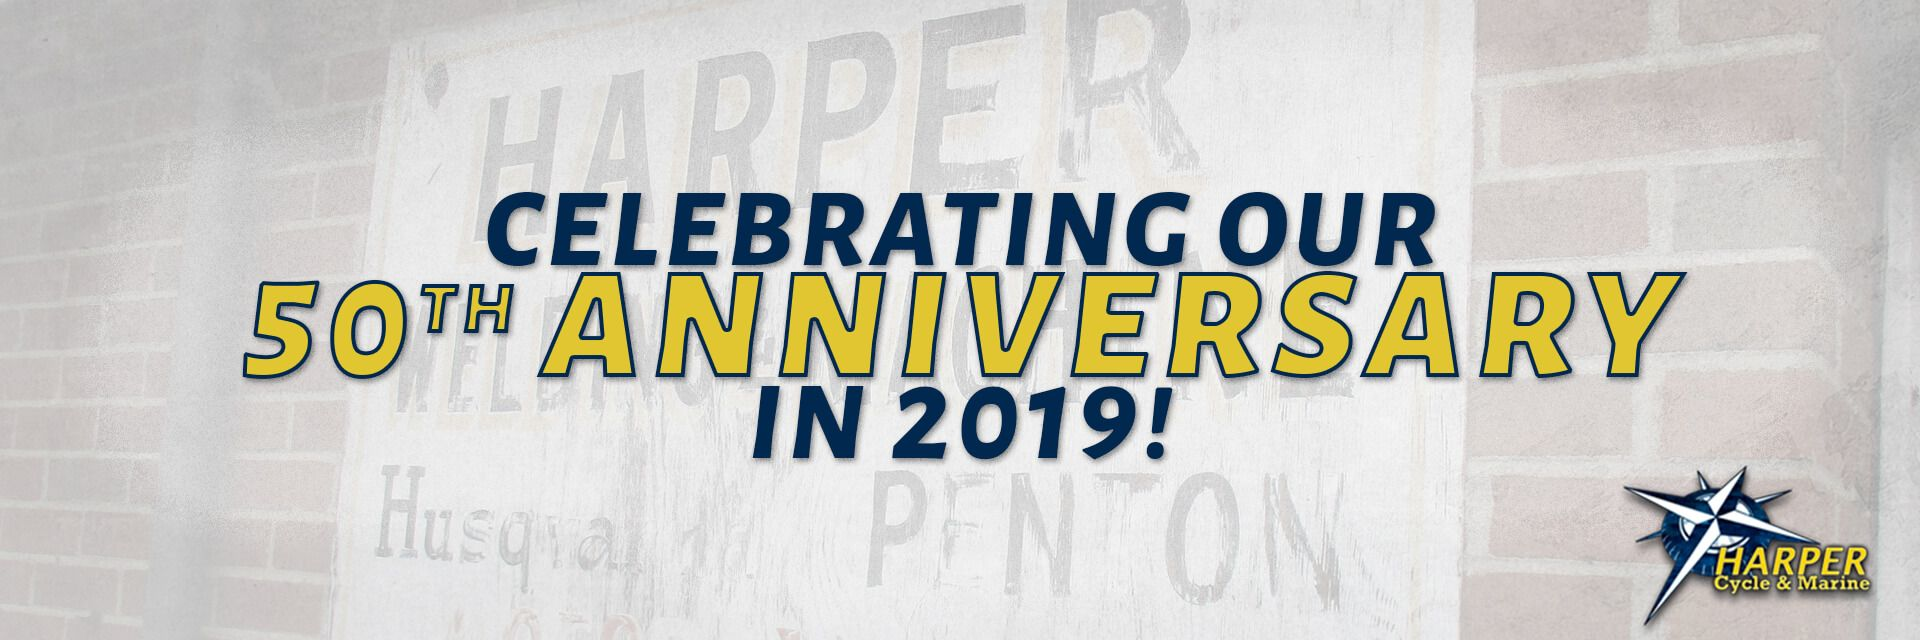 Celebrating our 50th Anniversary in 2019 at Harper Cycle & Marine!